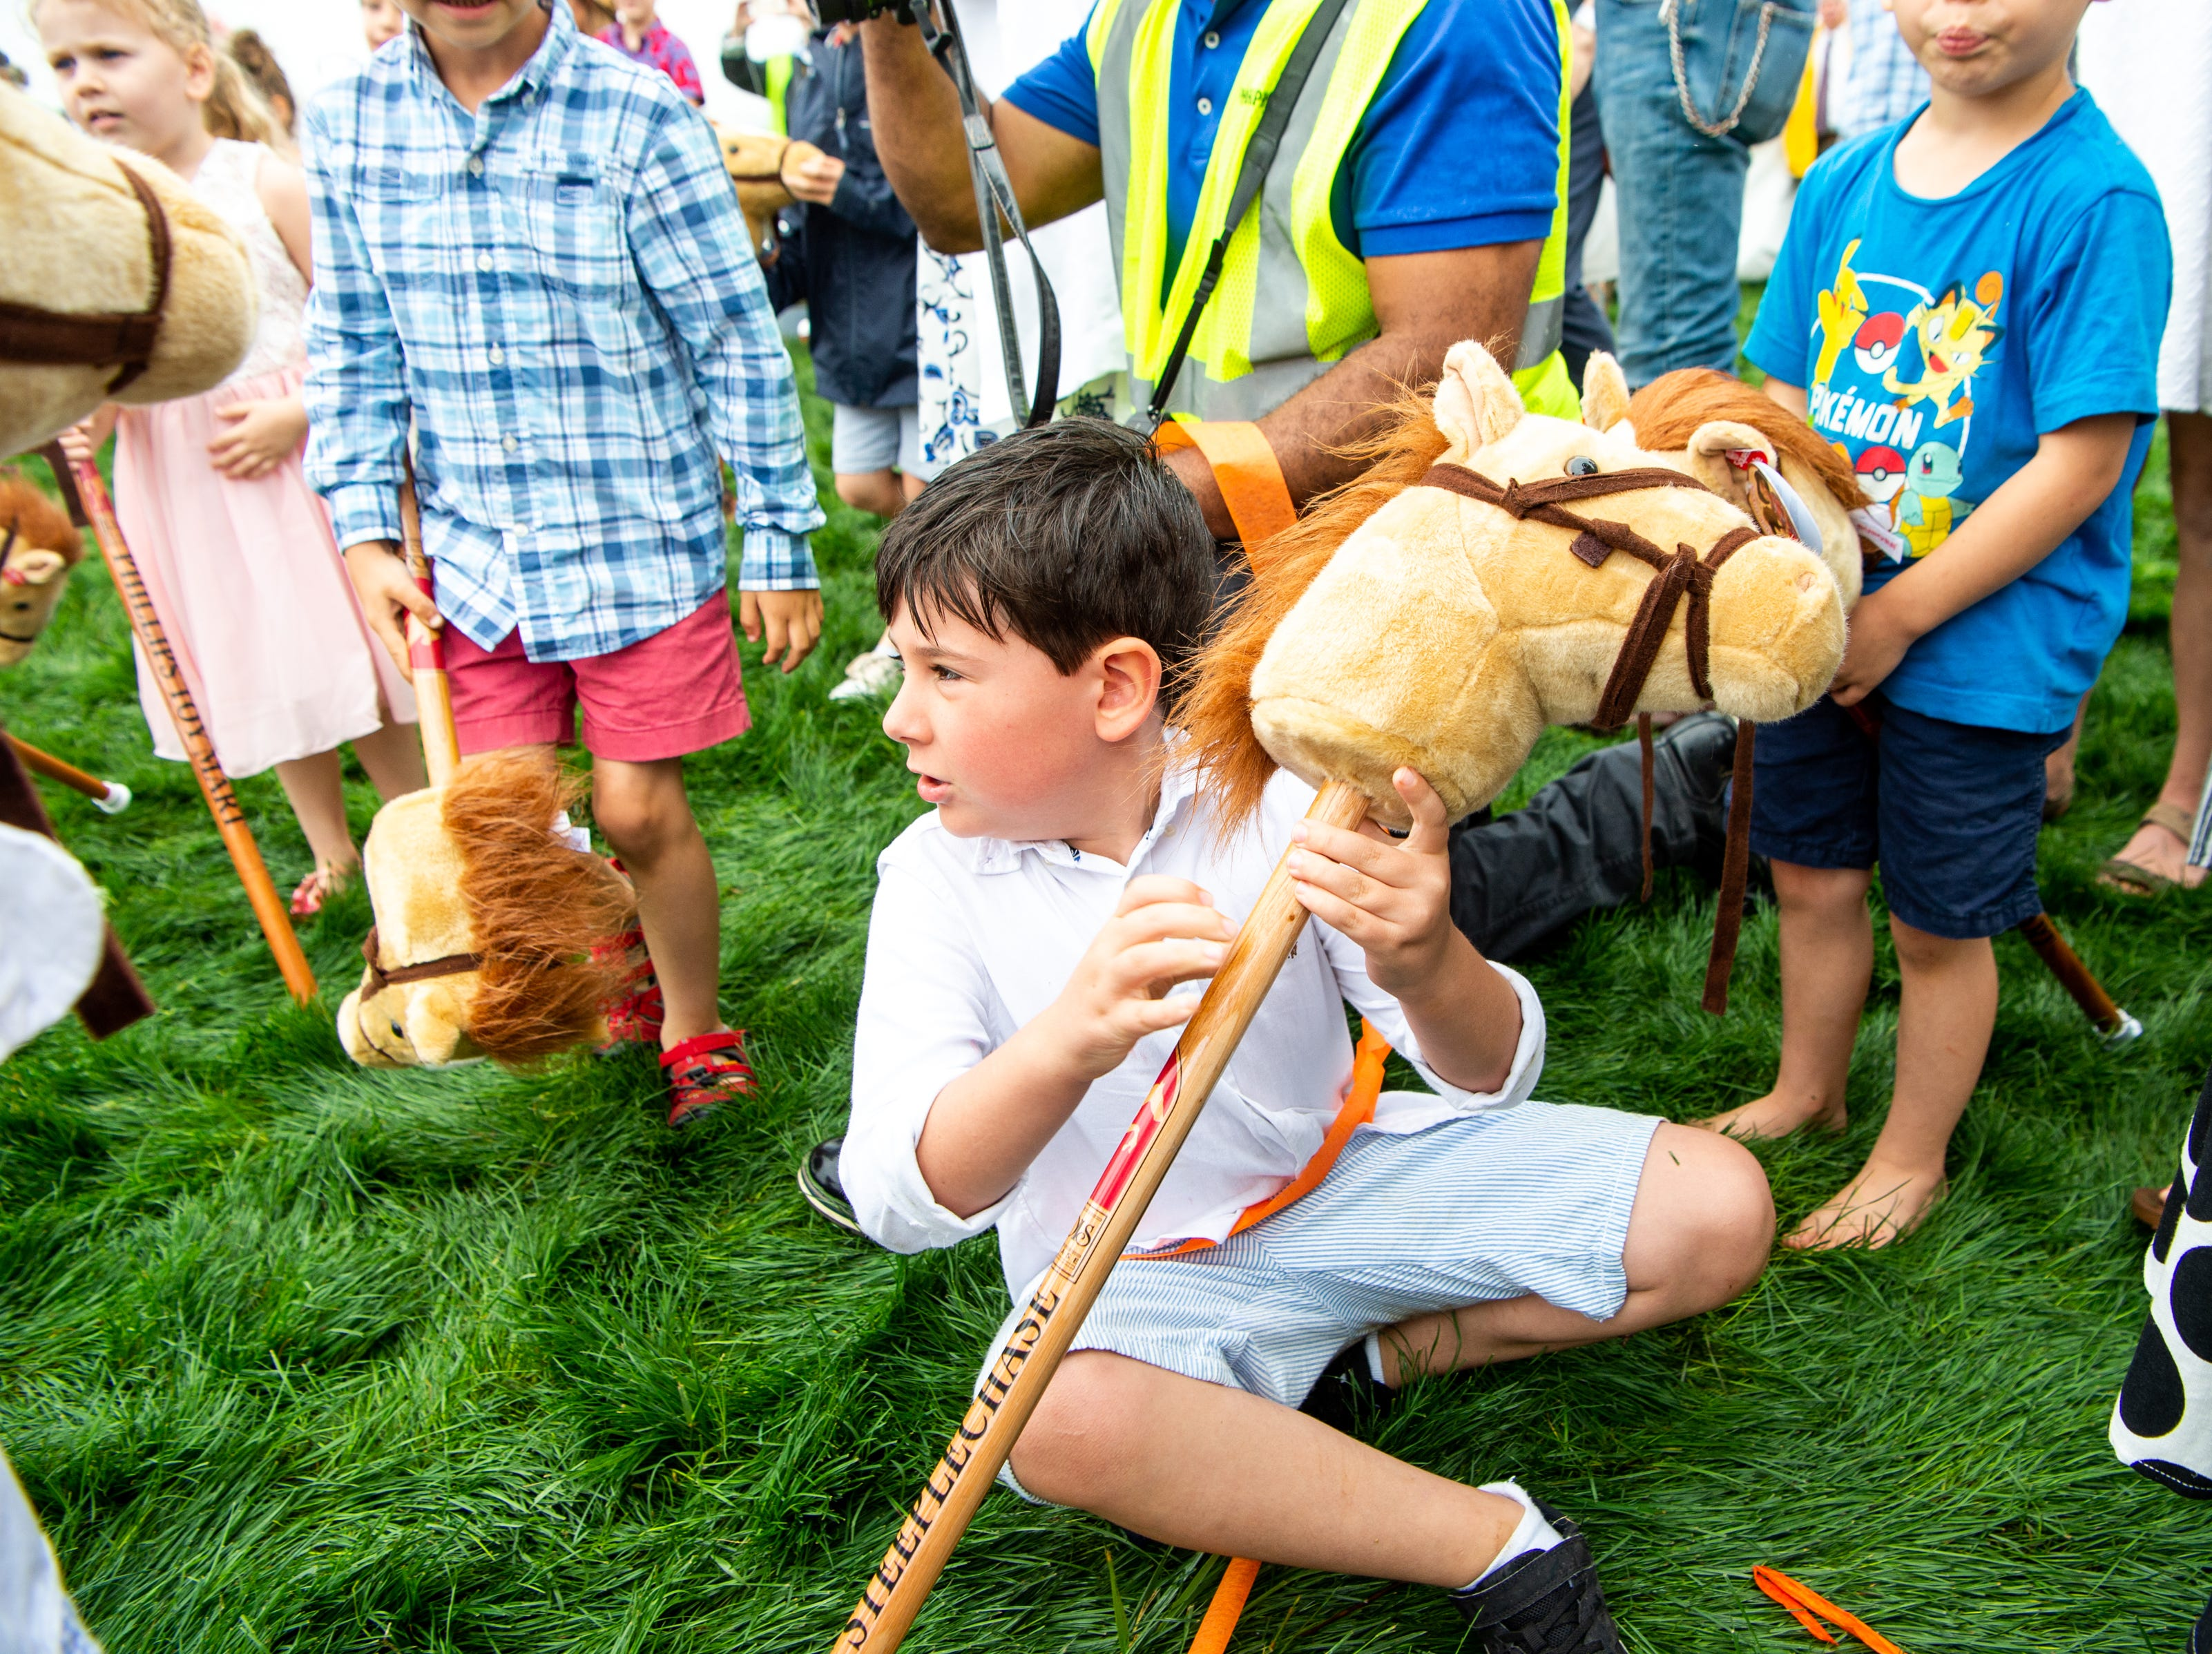 A child sits after competing in the stick horse race during the Iroquois Steeplechase at Percy Warner Park Saturday, May 11, 2019, in Nashville, Tenn.